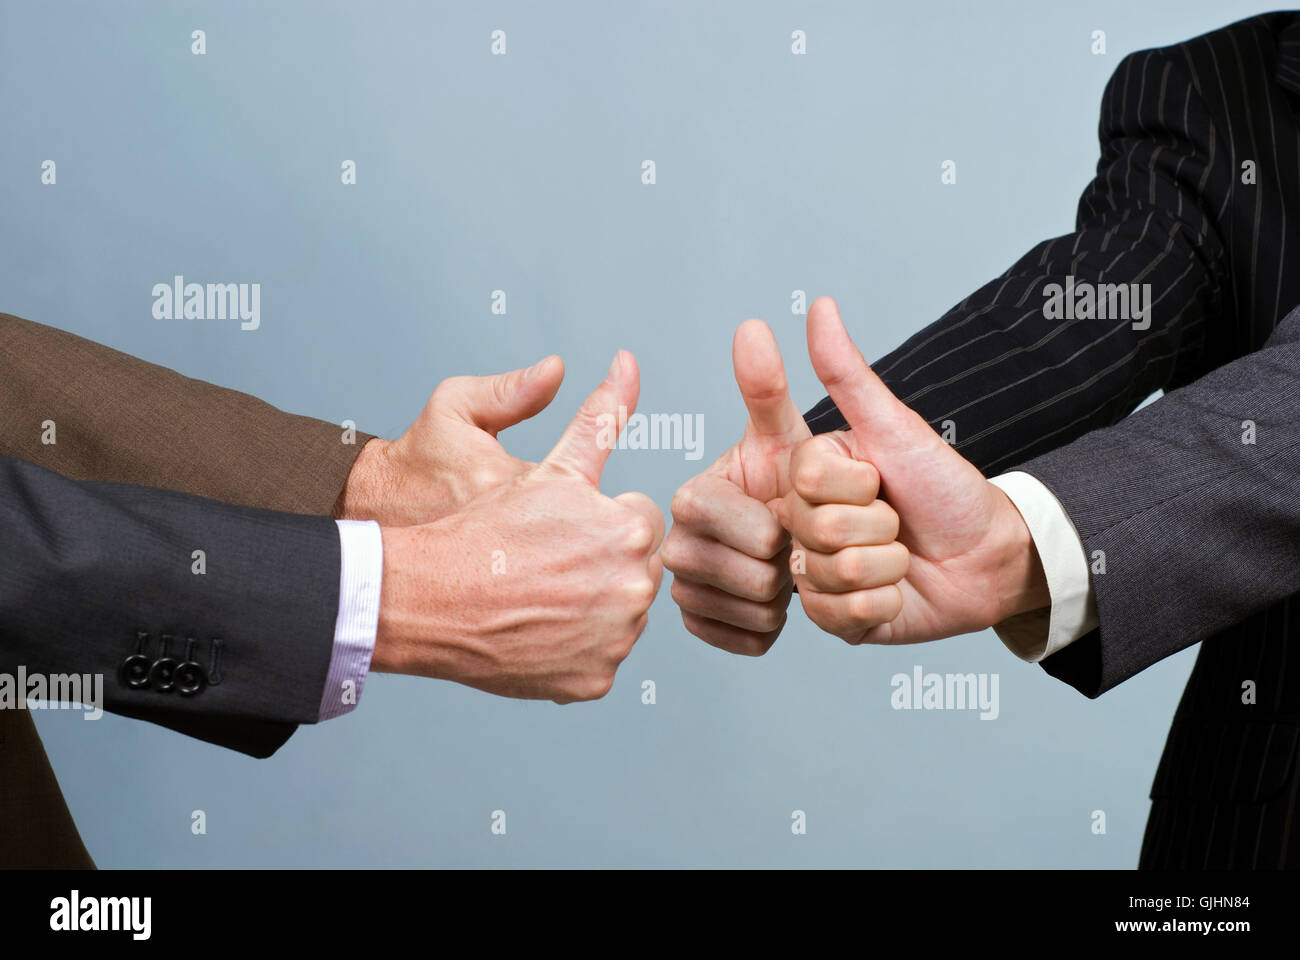 one opinion - Stock Image